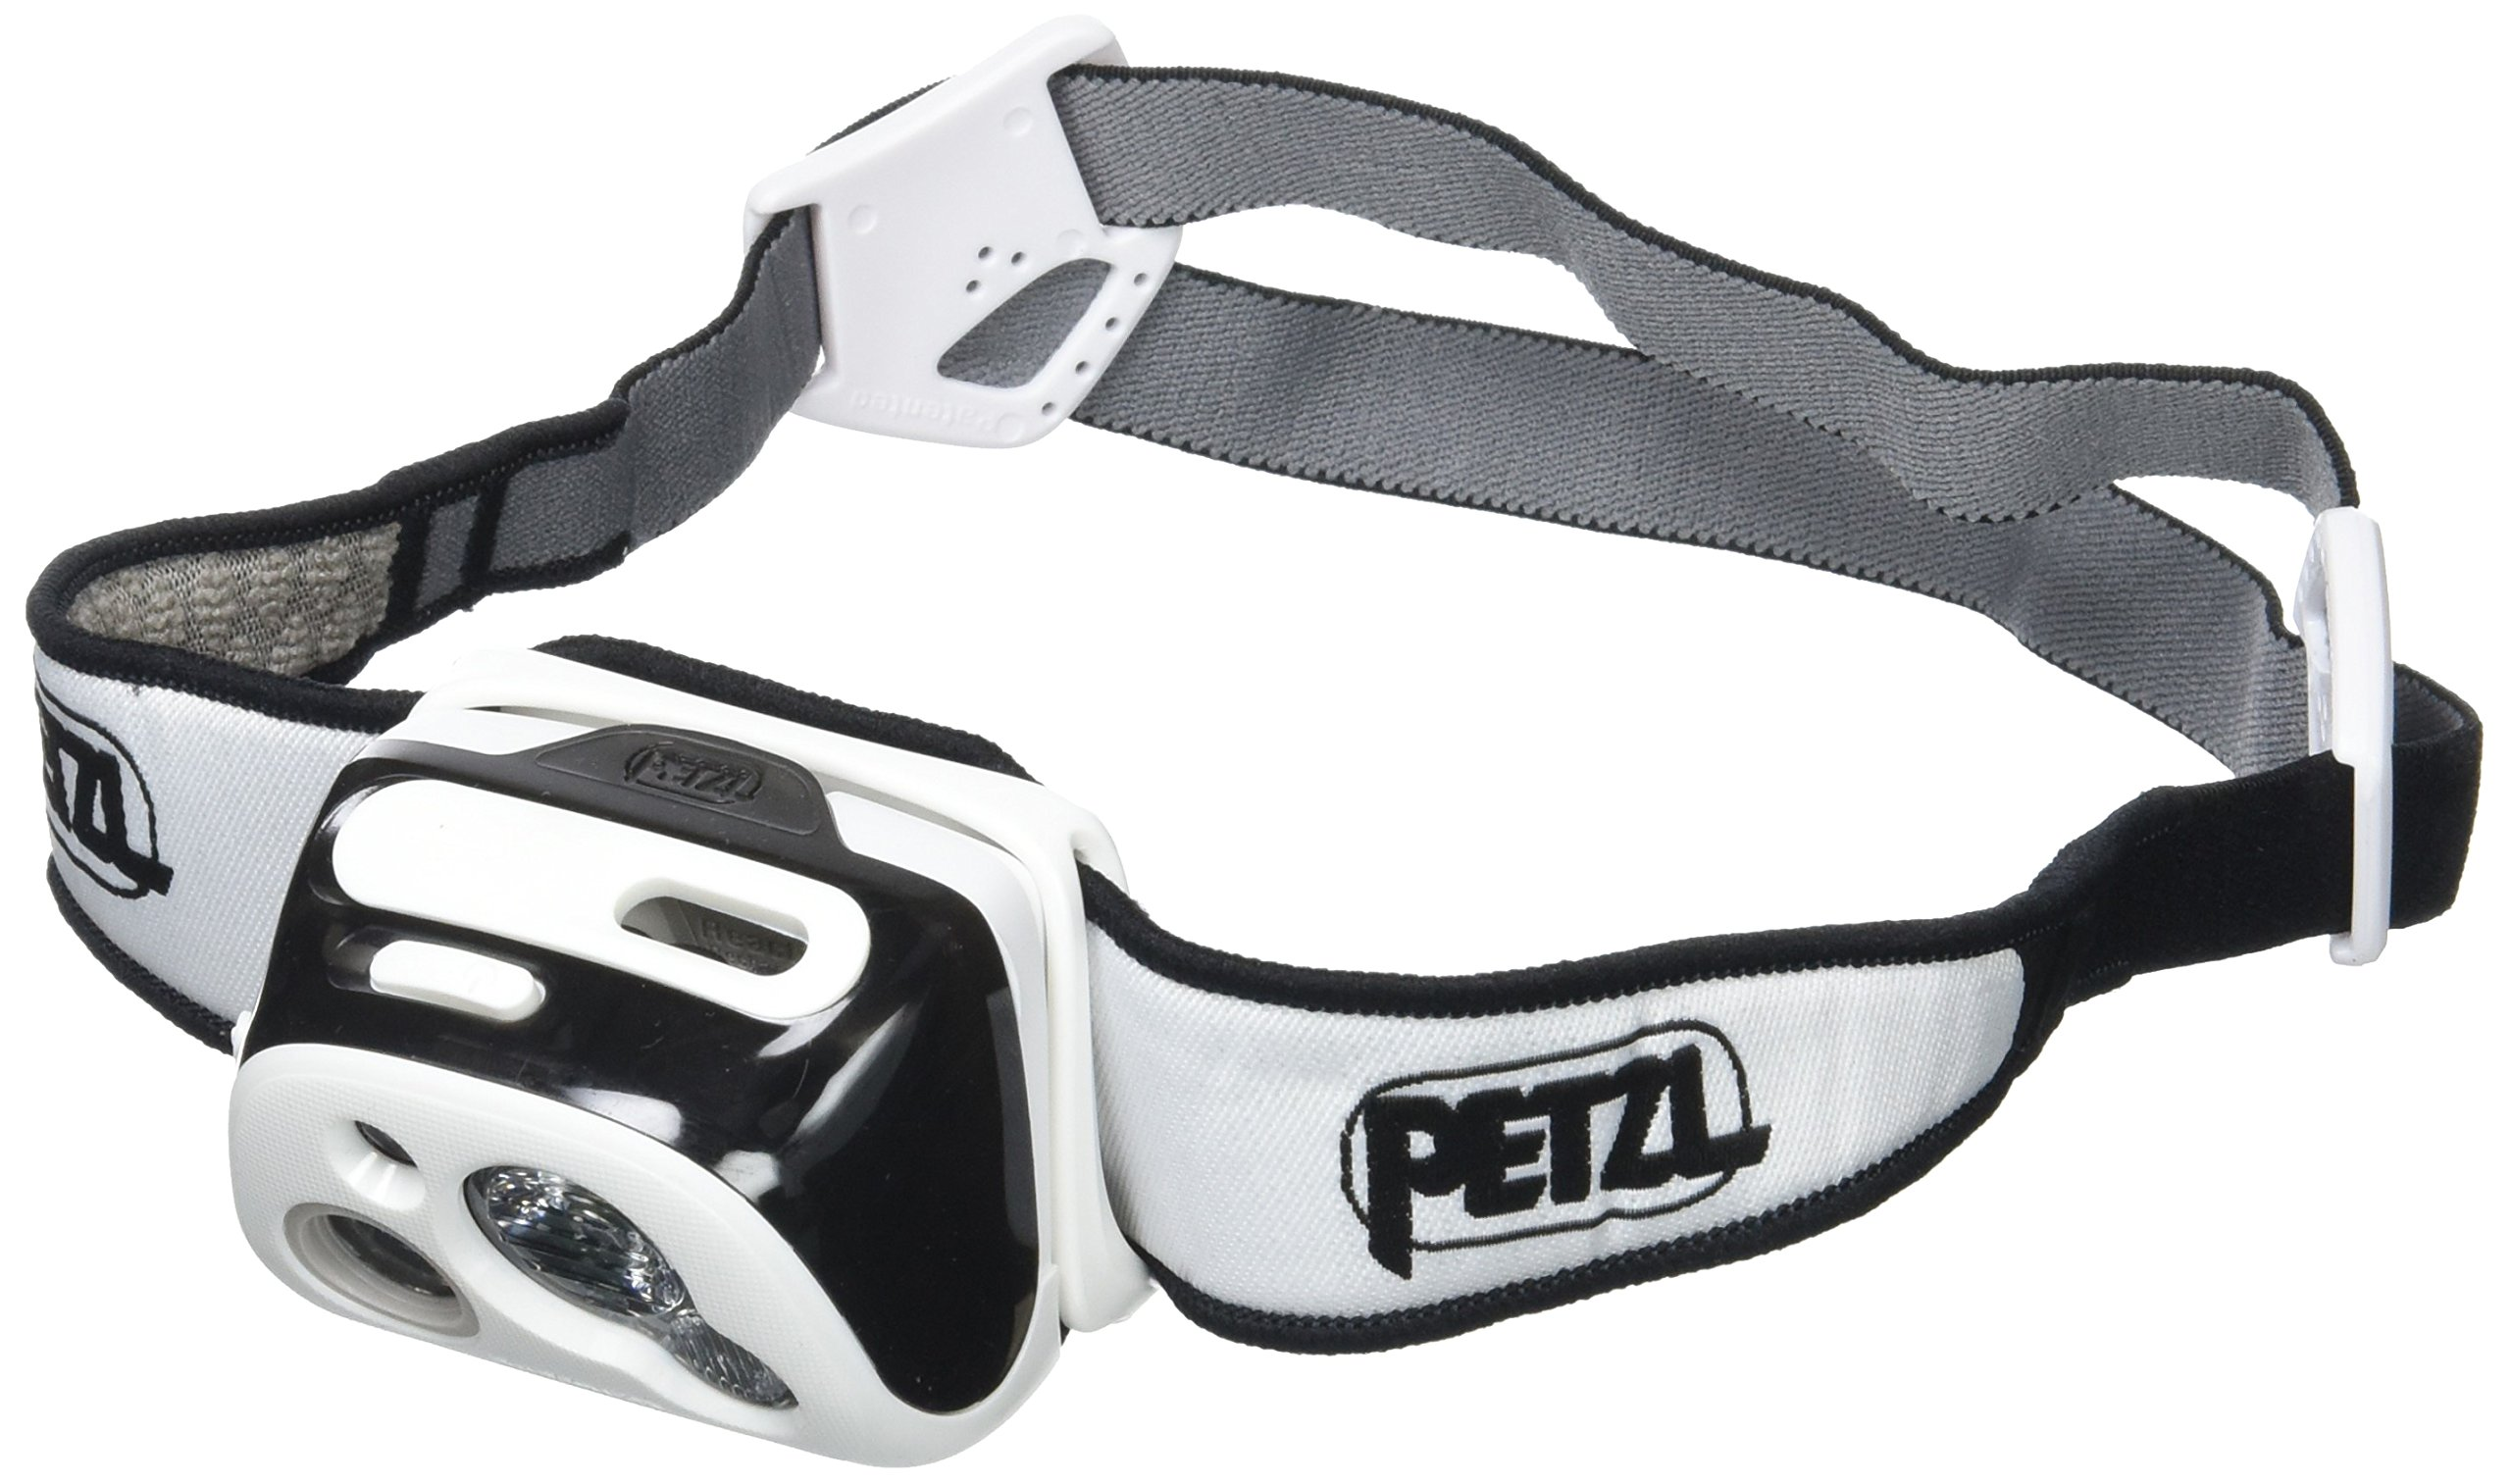 Petzl reactik Compact rechargeable et intelligent REACTIVE LIGHTING Head L....